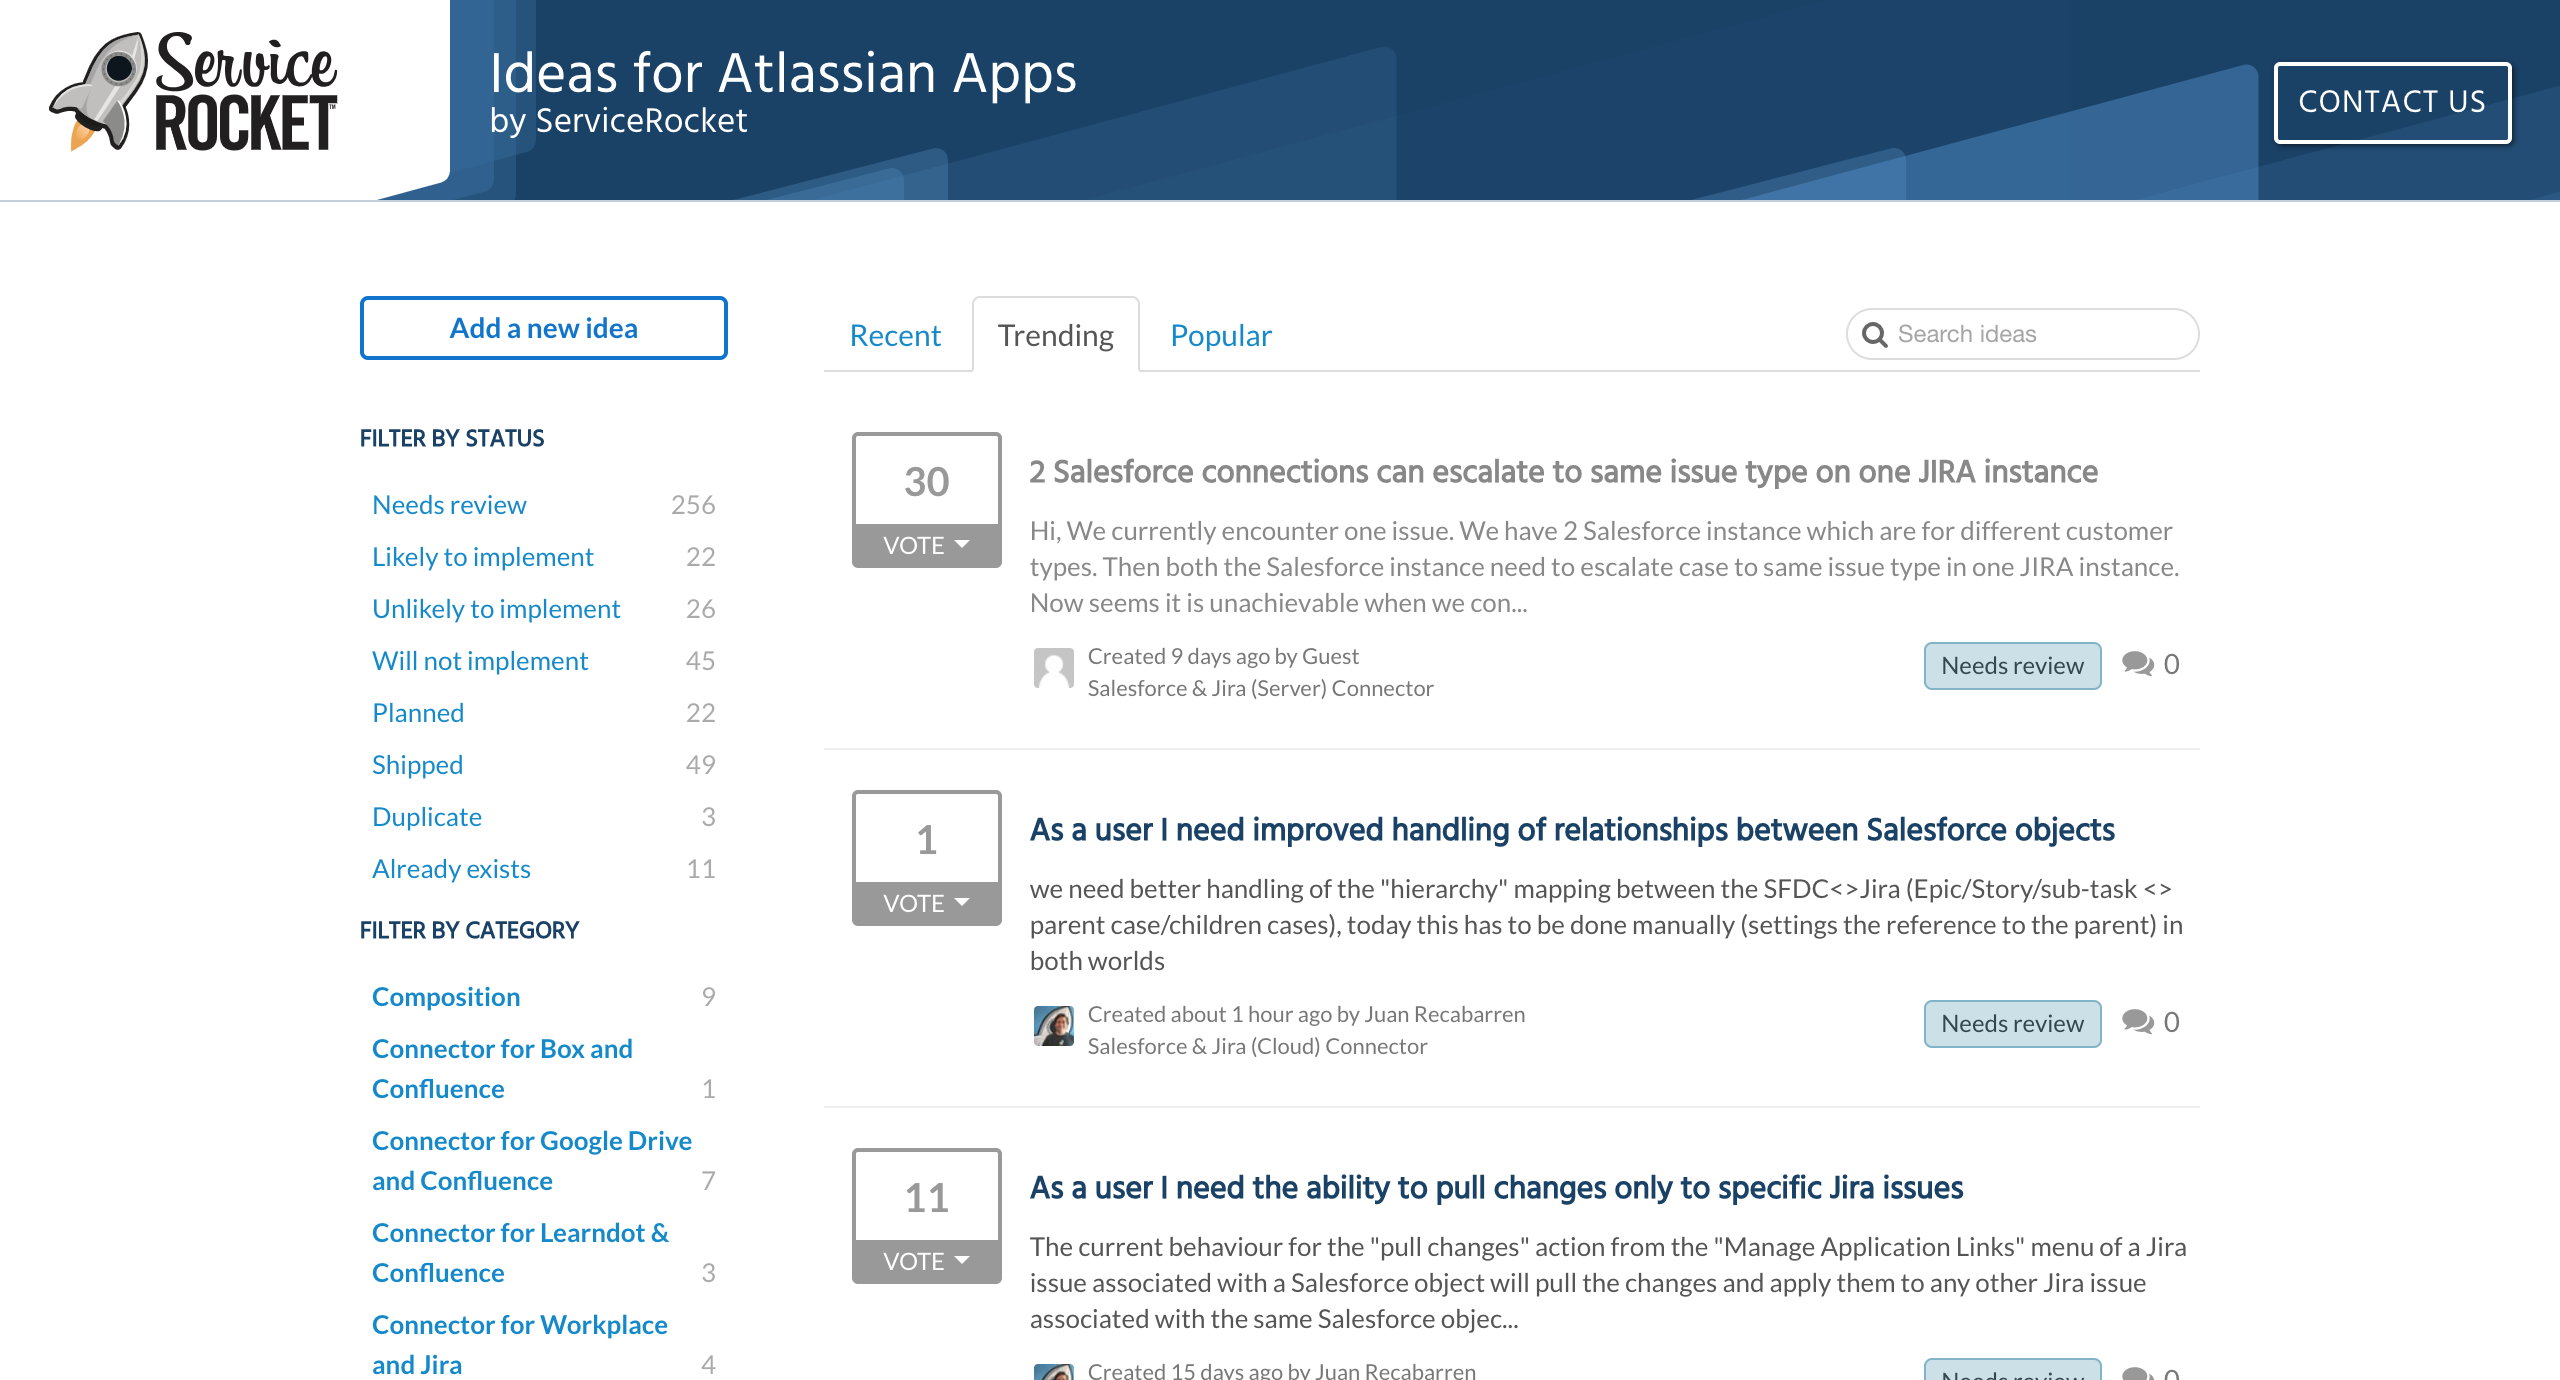 Visit: https://ideas.atlassian.servicerocket.com/ideas